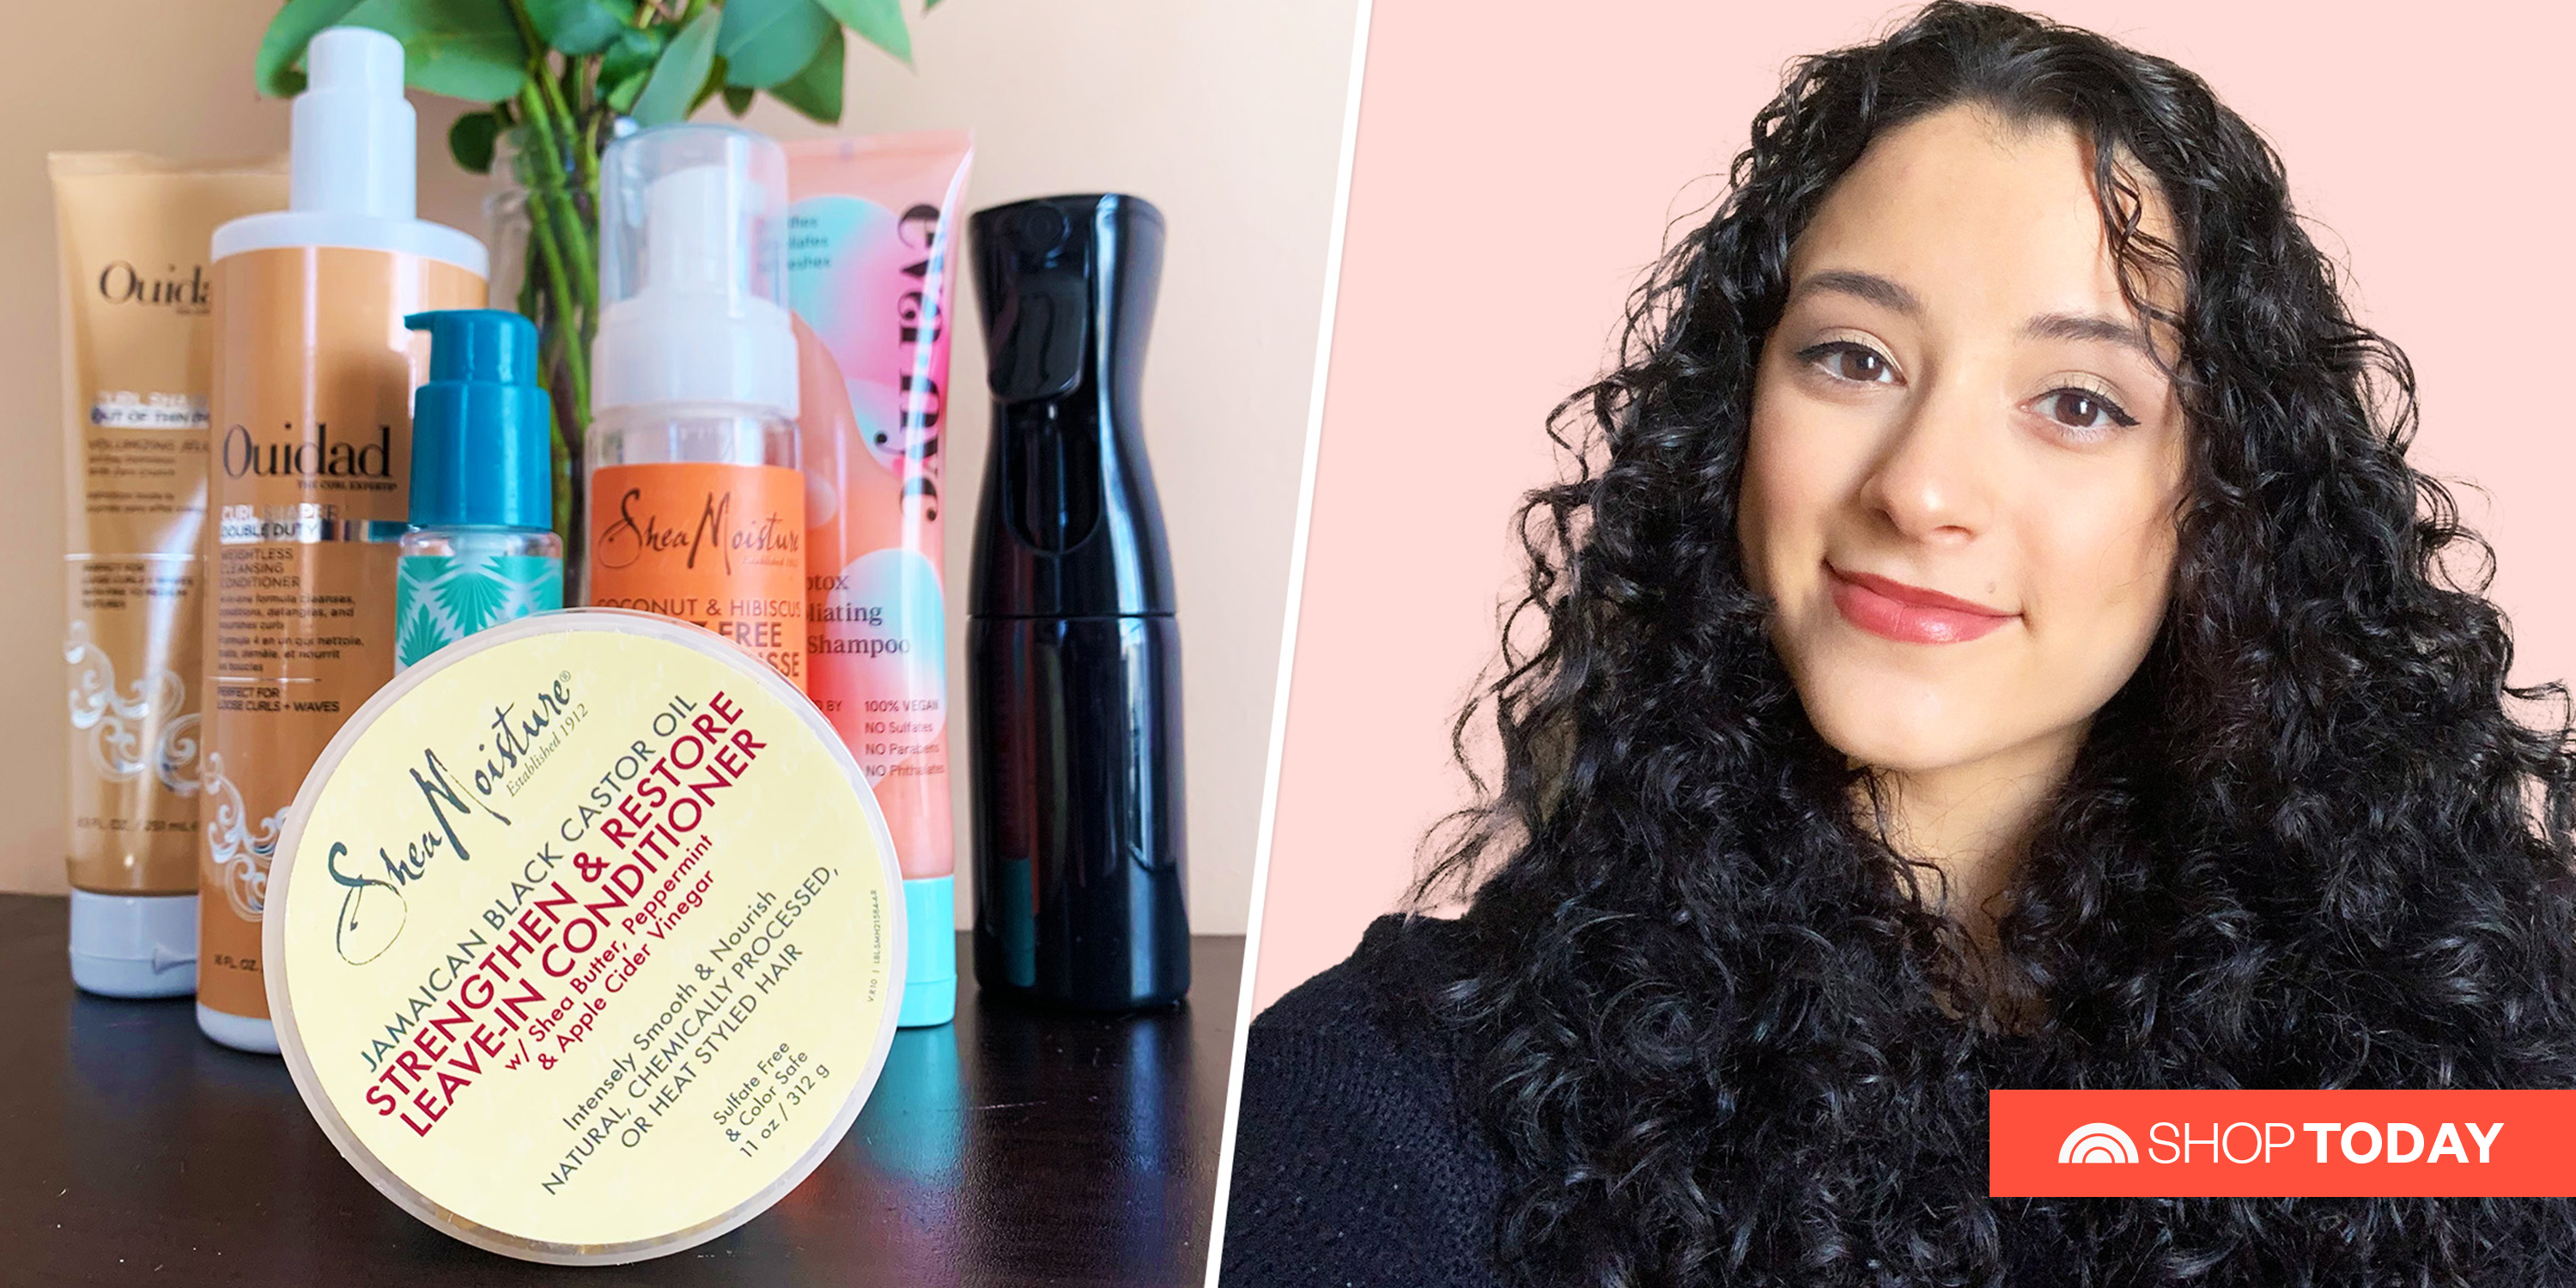 20 best hair products for curly hair in 20   TODAY